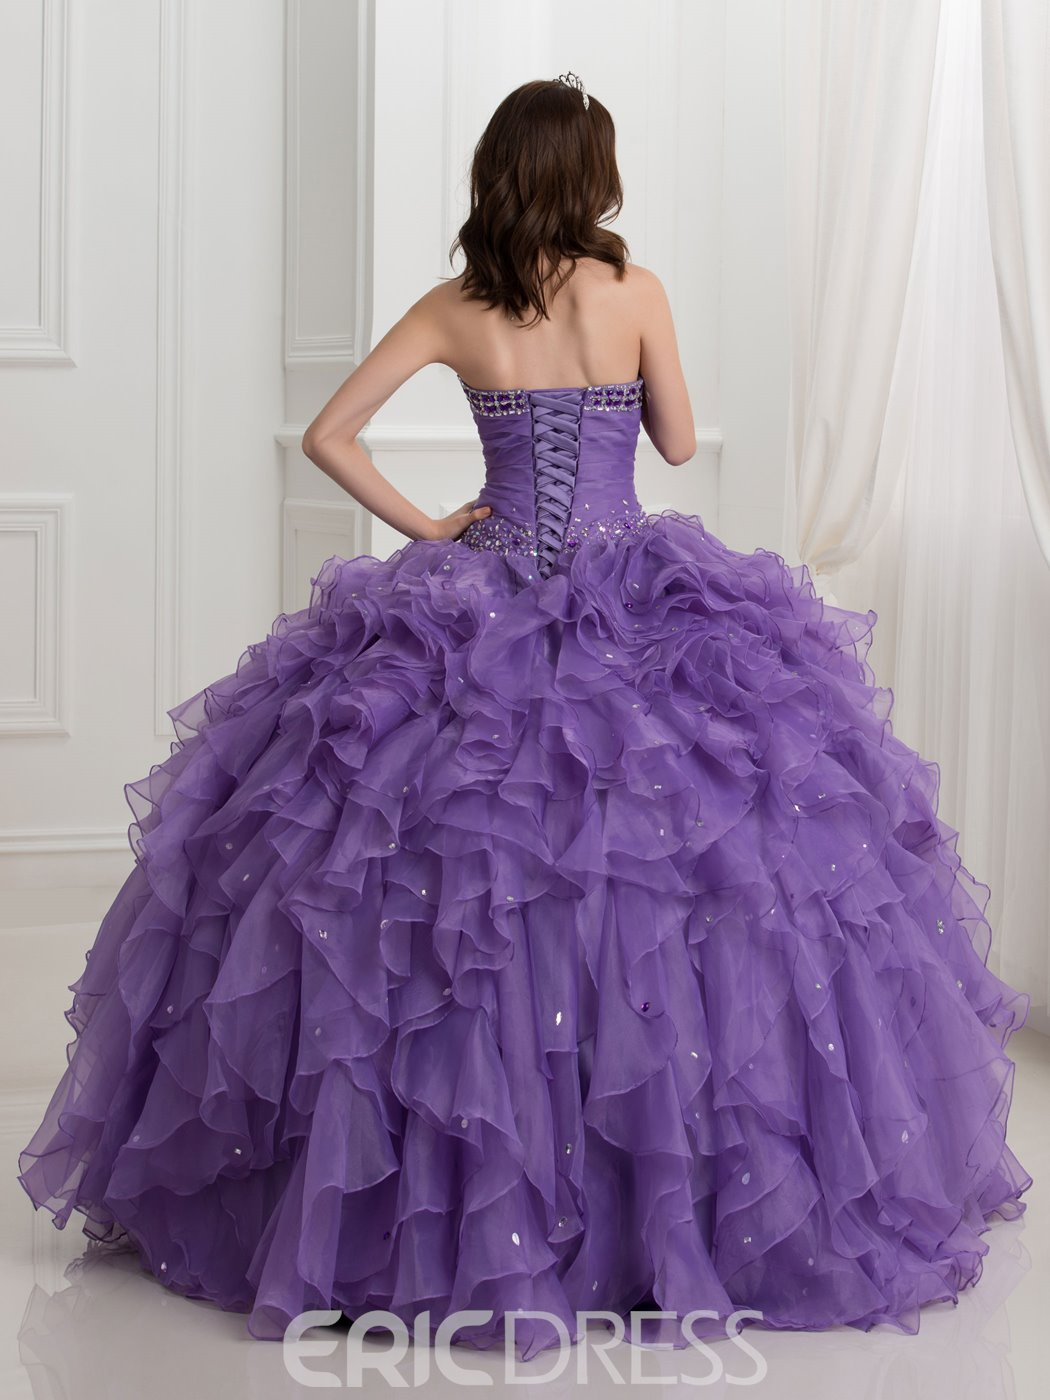 Ericdress Beading Cascading Ruffles Ball Gown Quinceanera Dress With Shawl